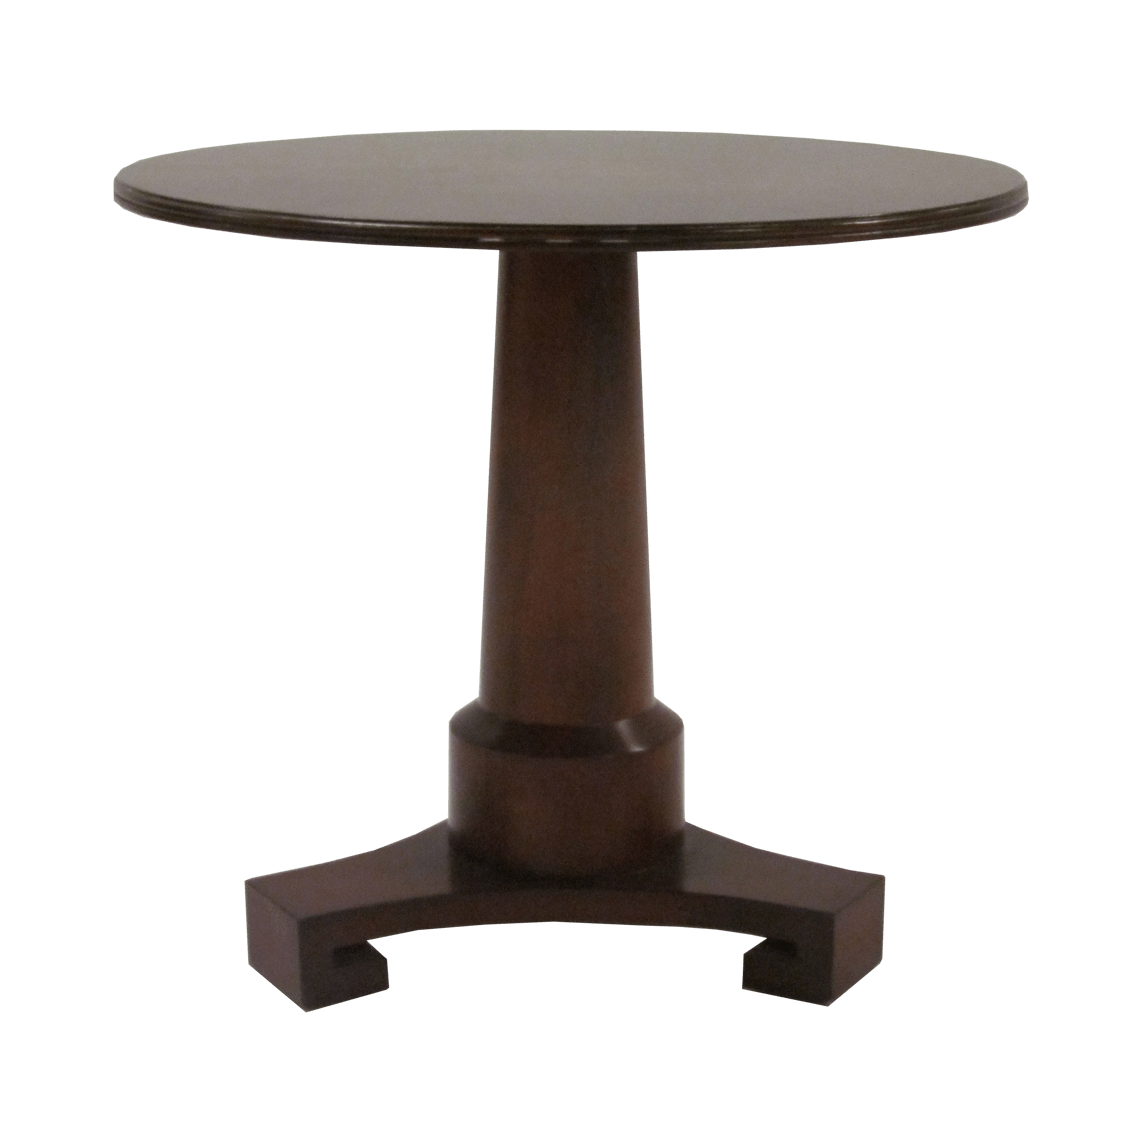 Thomas Pheasant Pedestal Side Table by Baker